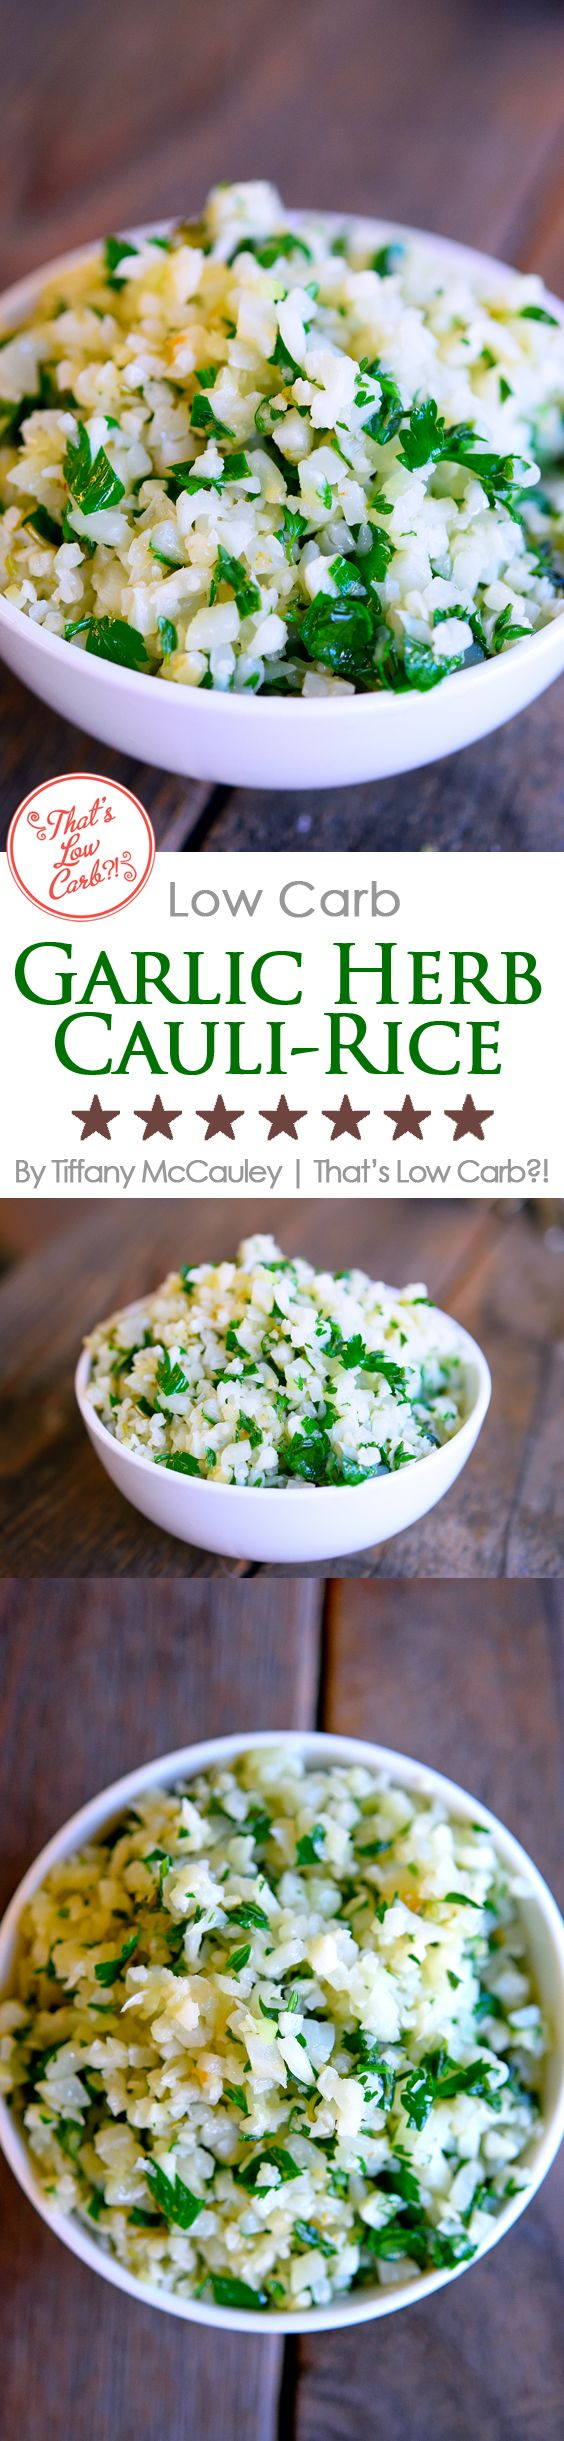 Low Carb Recipes | Low Carb Rice Recipe | Cauliflower Rice Recipe | Healthy Recipe ~ http://www.thatslowcarb.com